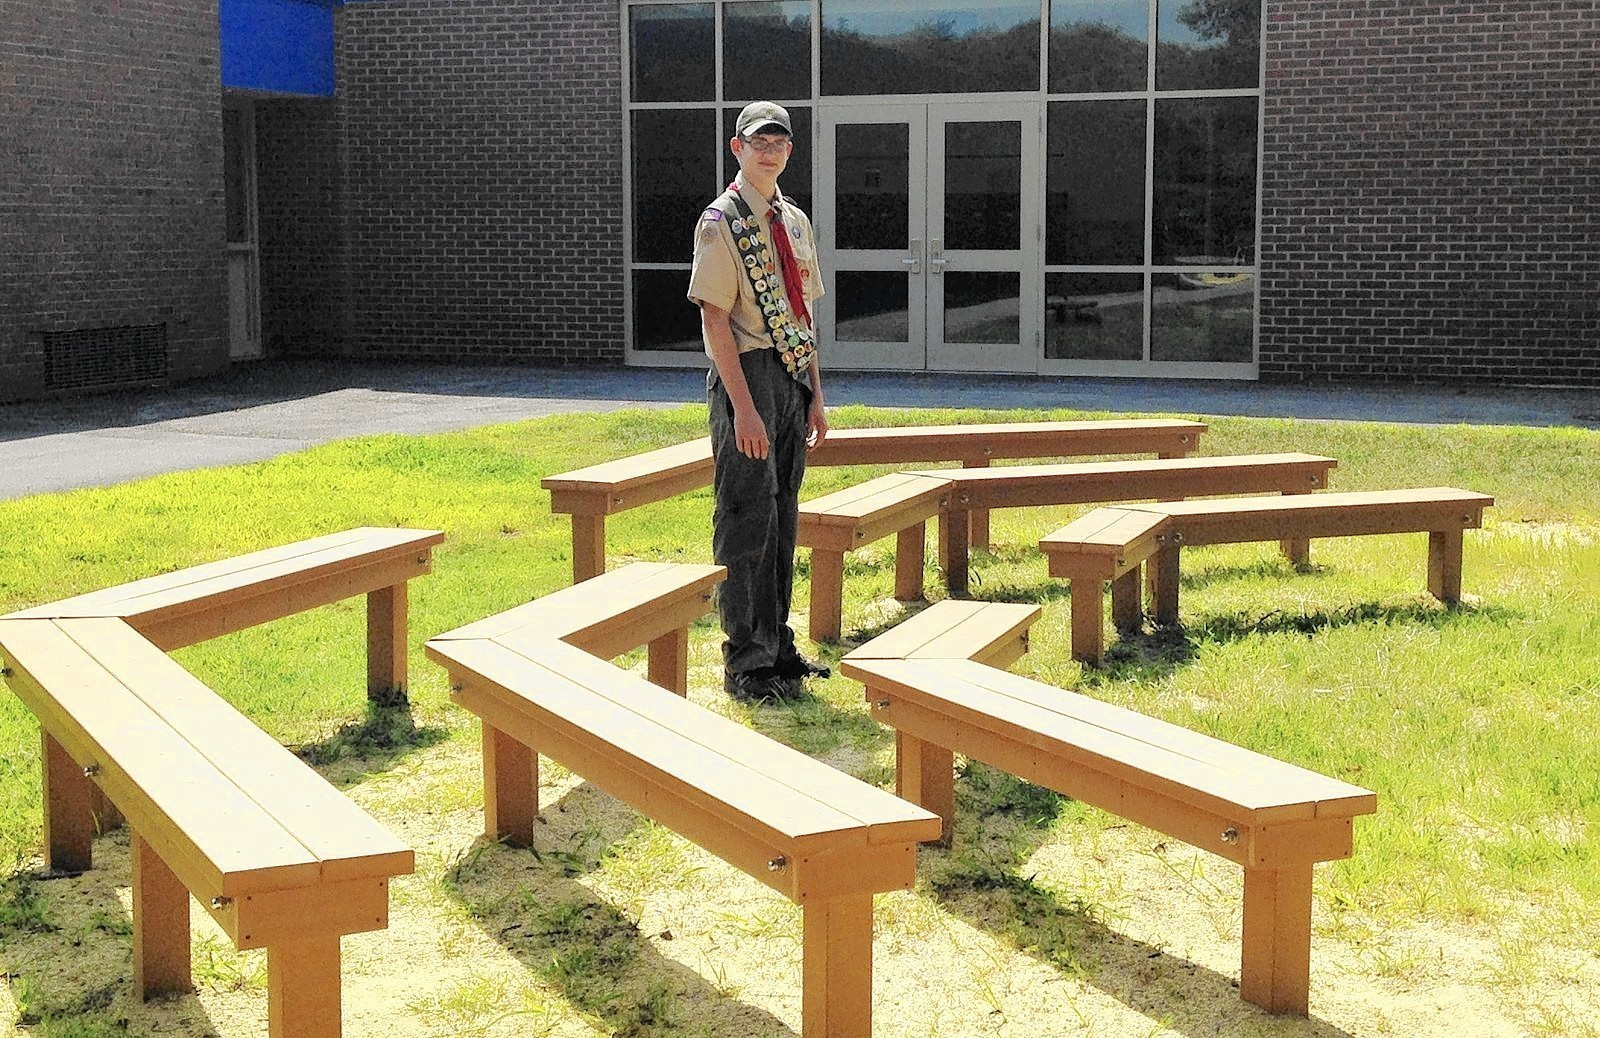 Outdoor Classroom Ideas Elementary School ~ Pasadena eagle scout helps bodkin elementary take the